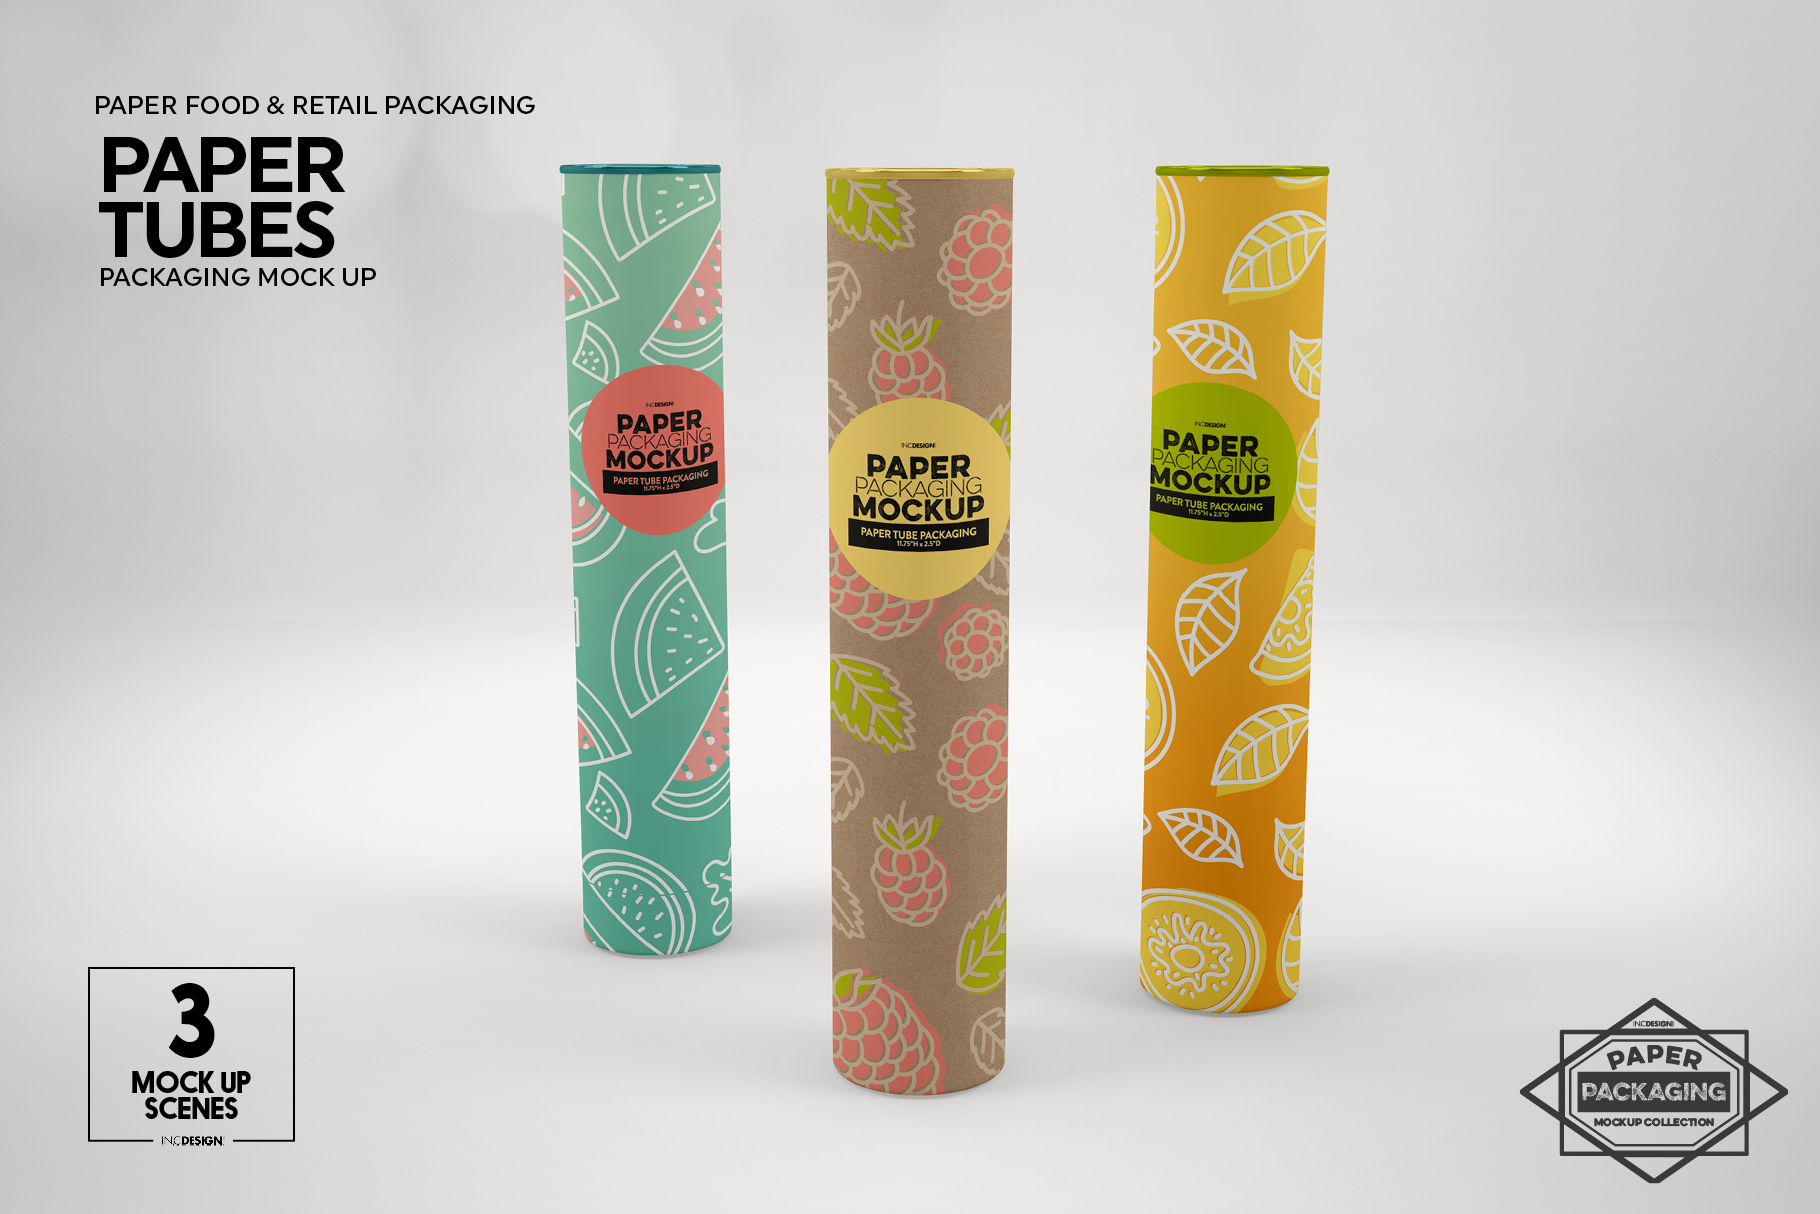 Paper Tube Packaging Mockup example image 2